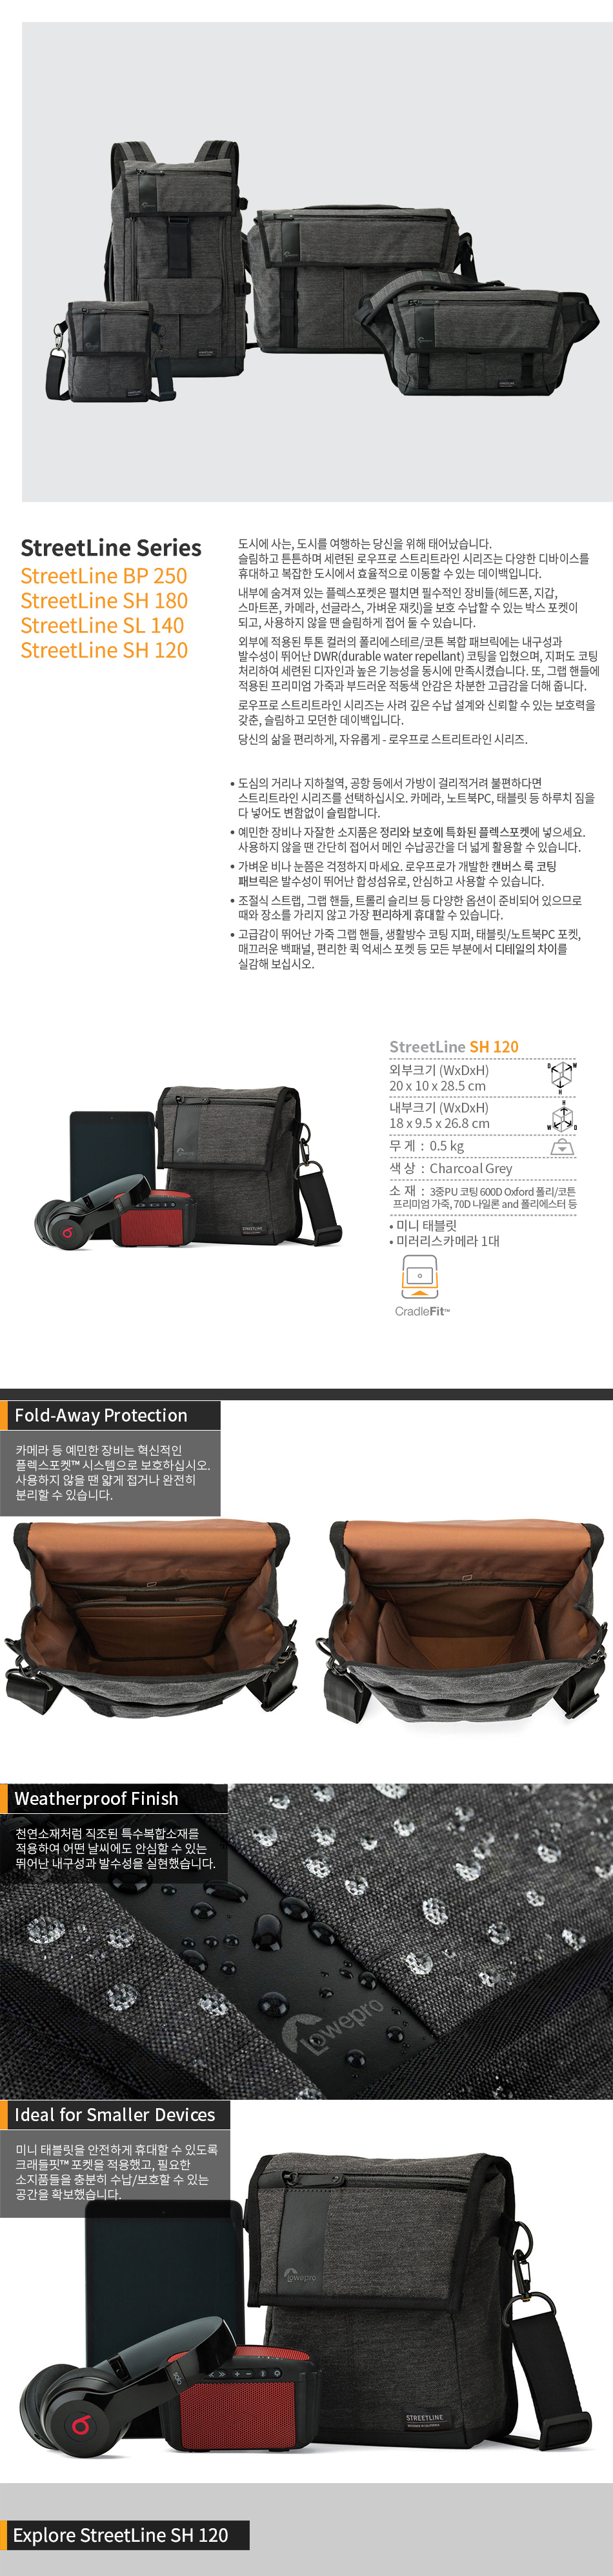 Lowepro Streetline Sh 120 Series Product Video